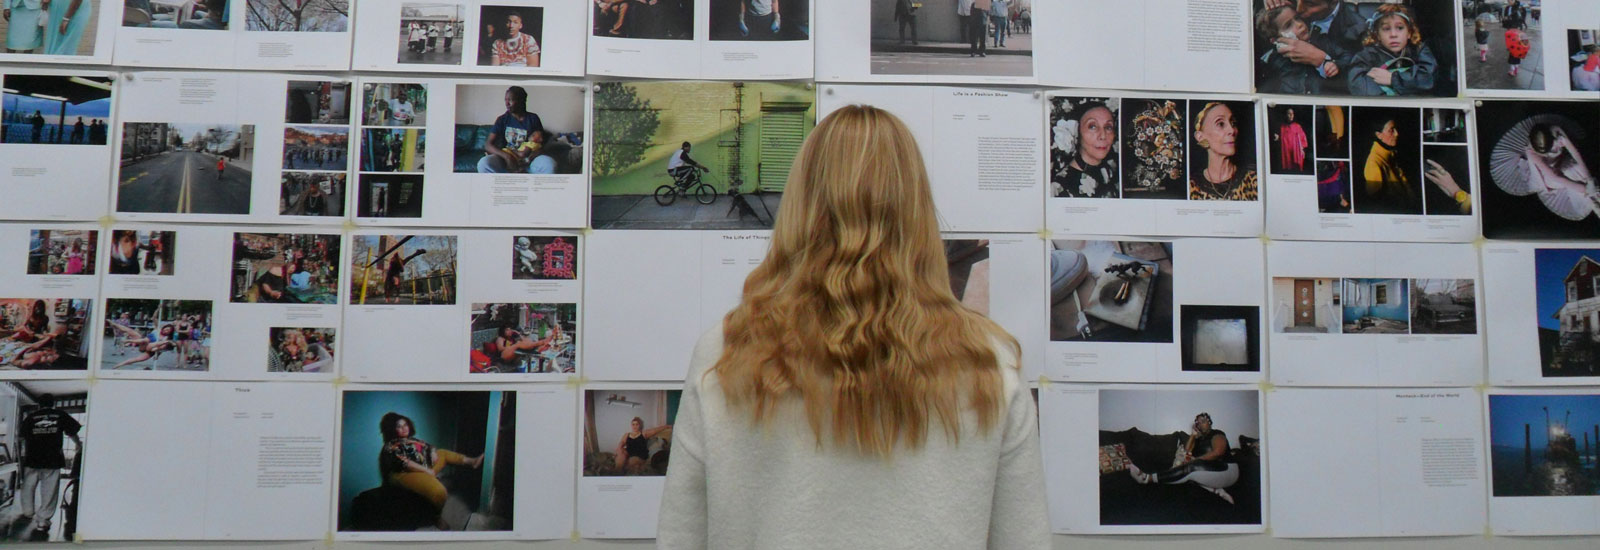 Ostkreuz School Of Photography | Application Deadline For »Picture Editor Class« 2018/2019